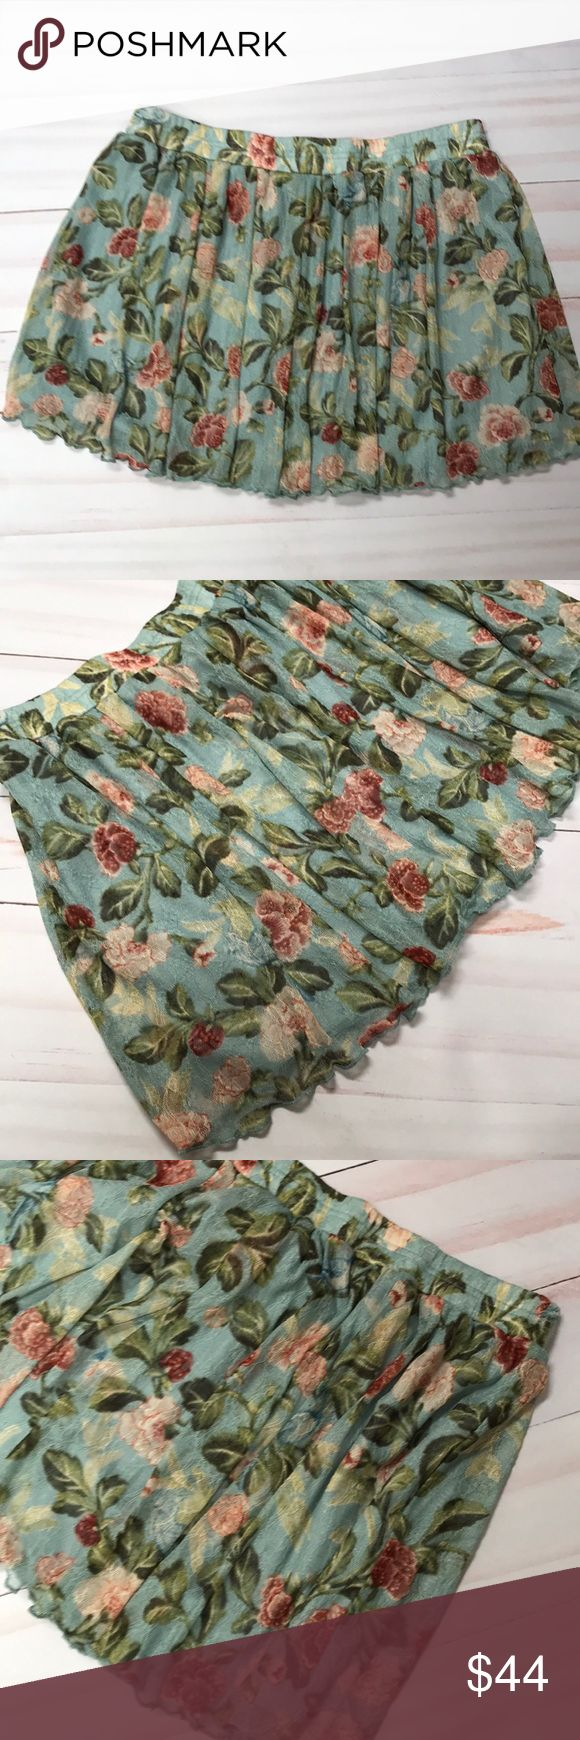 """Denim & Supply Ralph Lauren Lace Floral Skirt XL New Ralph Lauren Denim & Supply pleated lace floral skirt size XL.  The skirt is lined.  It measures laying flat 16"""" across the waist and is 15"""" long. Denim & Supply Ralph Lauren Skirts Mini"""